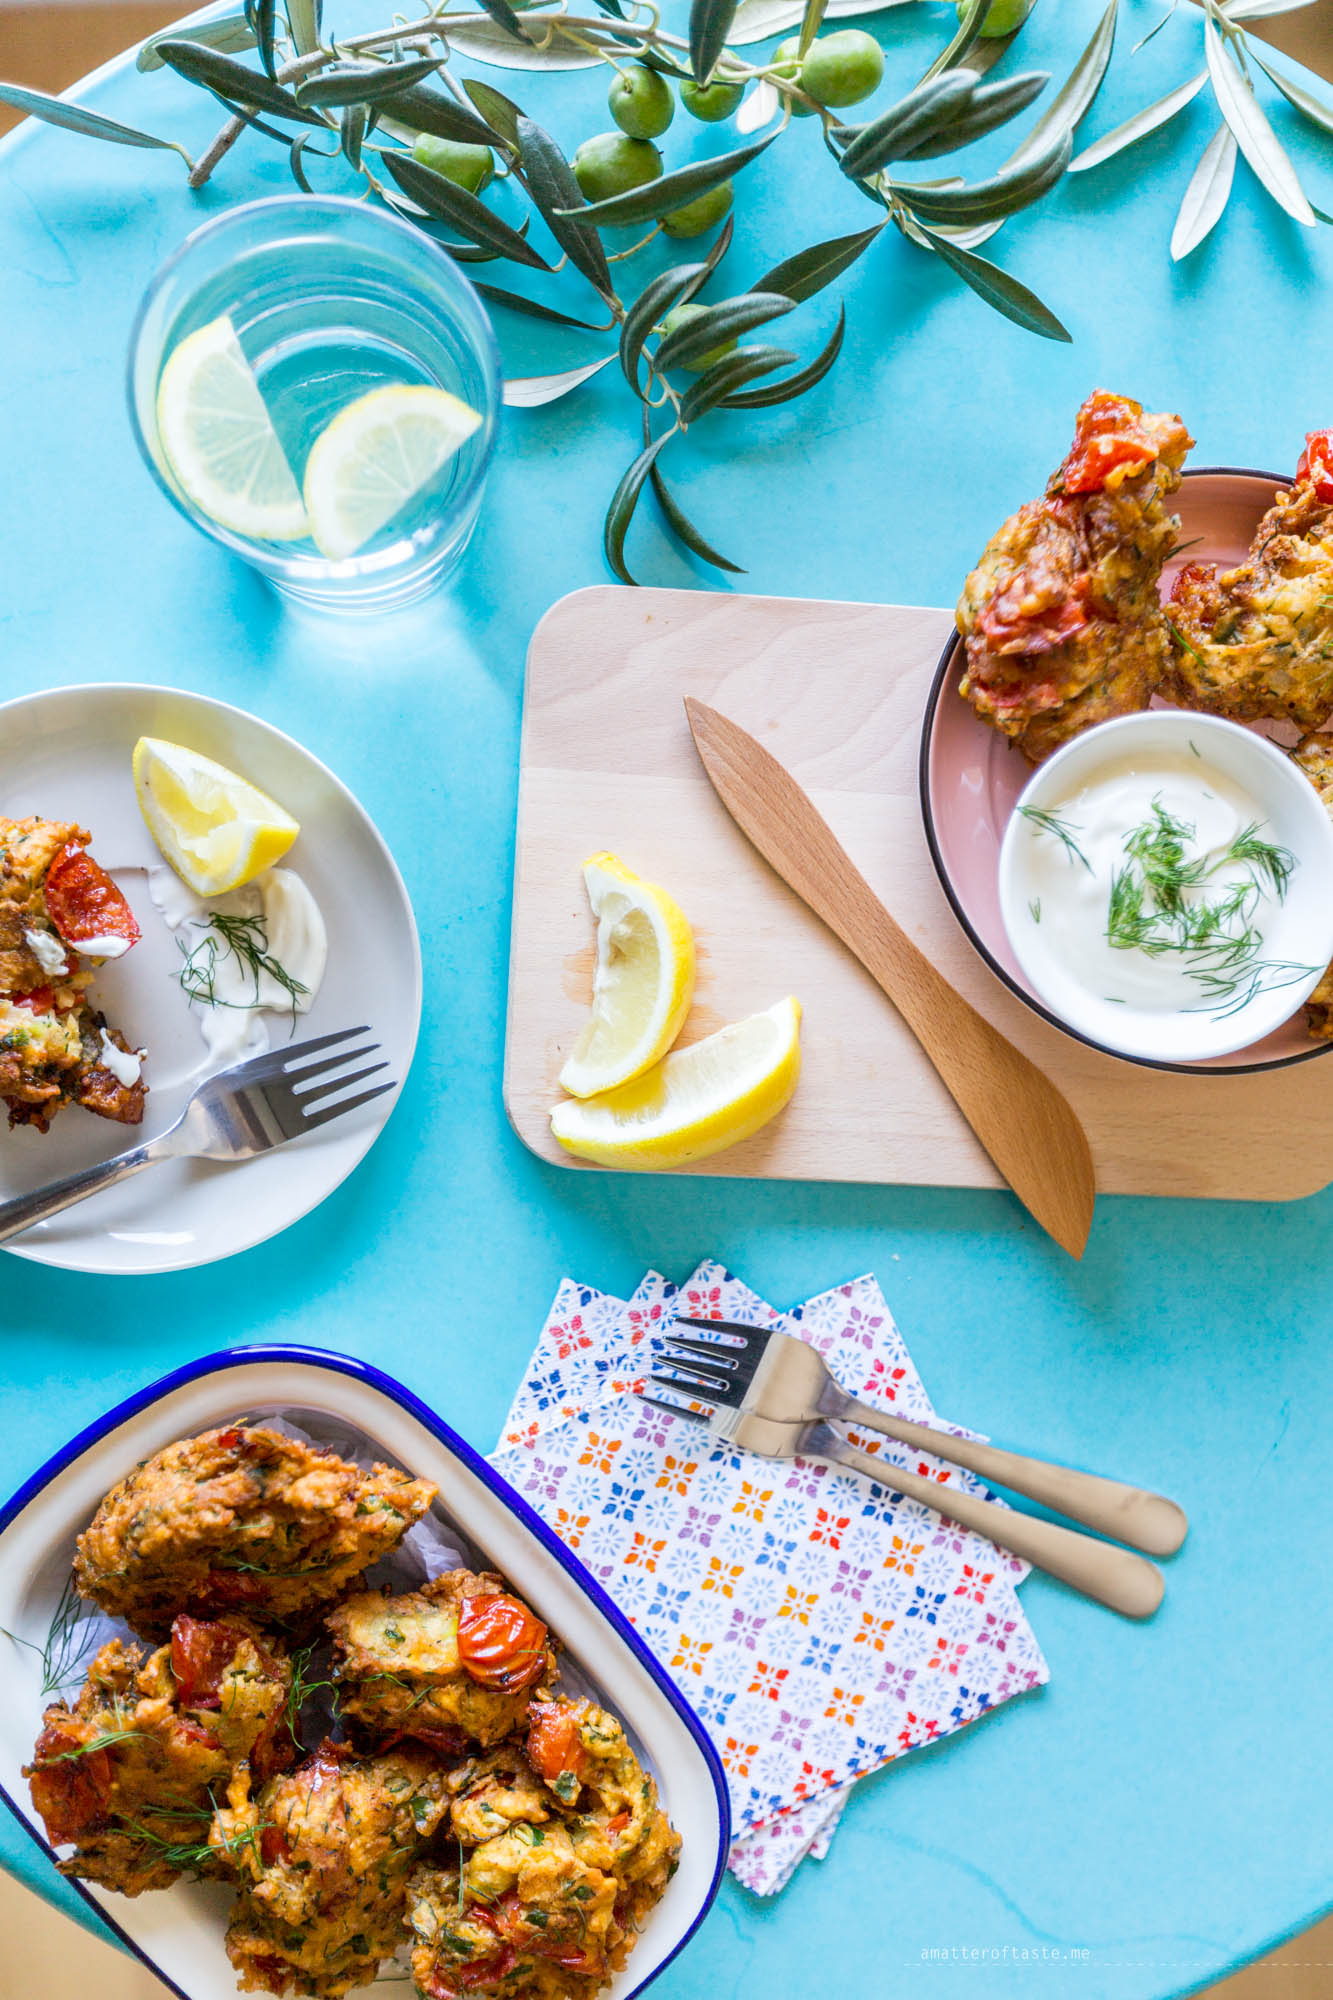 Santorini tomato fritters recipe inspired by holidays